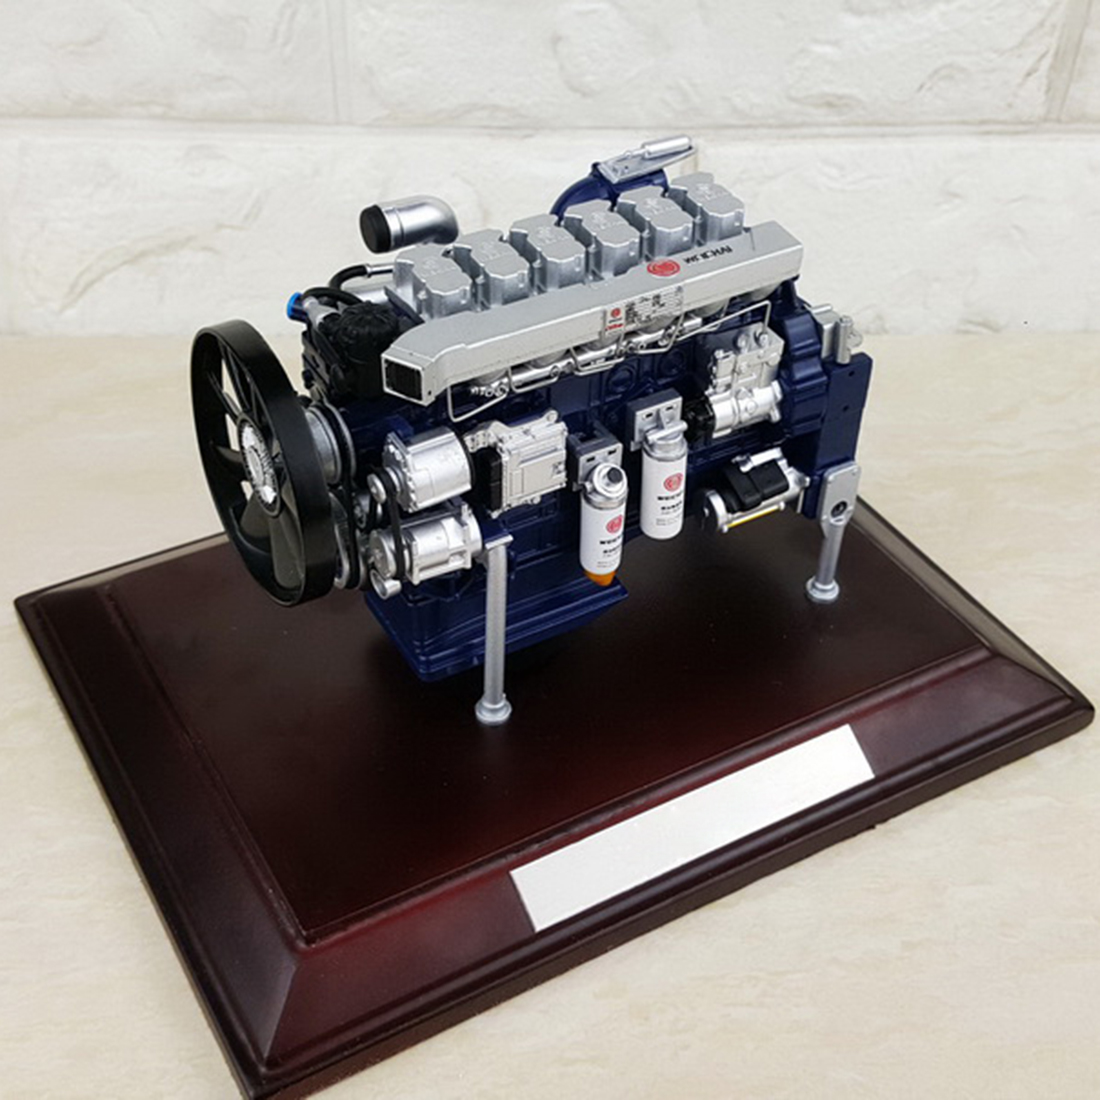 1/12 WP13 13L Diesel Engine Model - Collector Edition